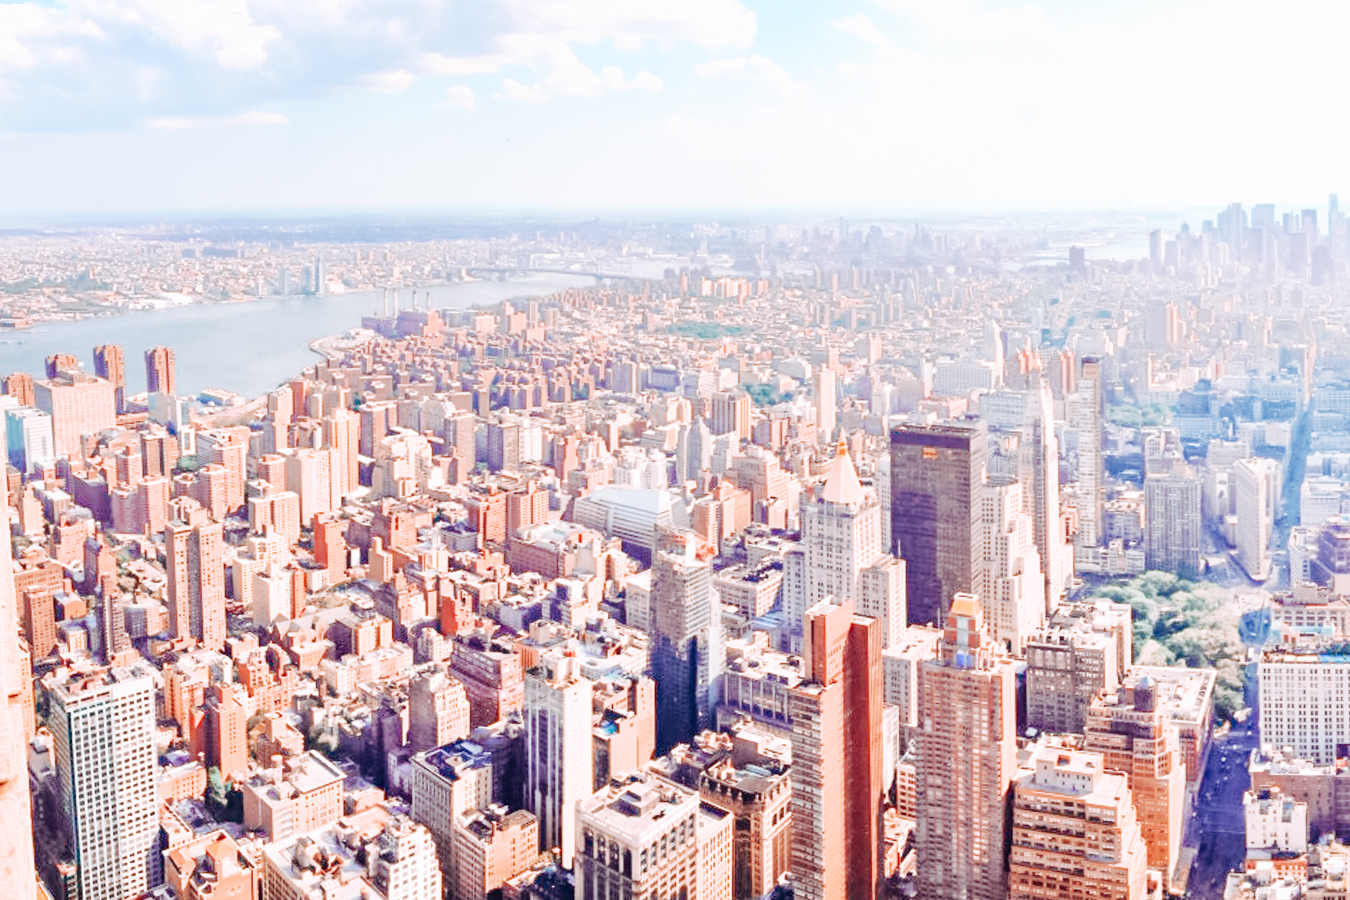 Buildings in New York City from above